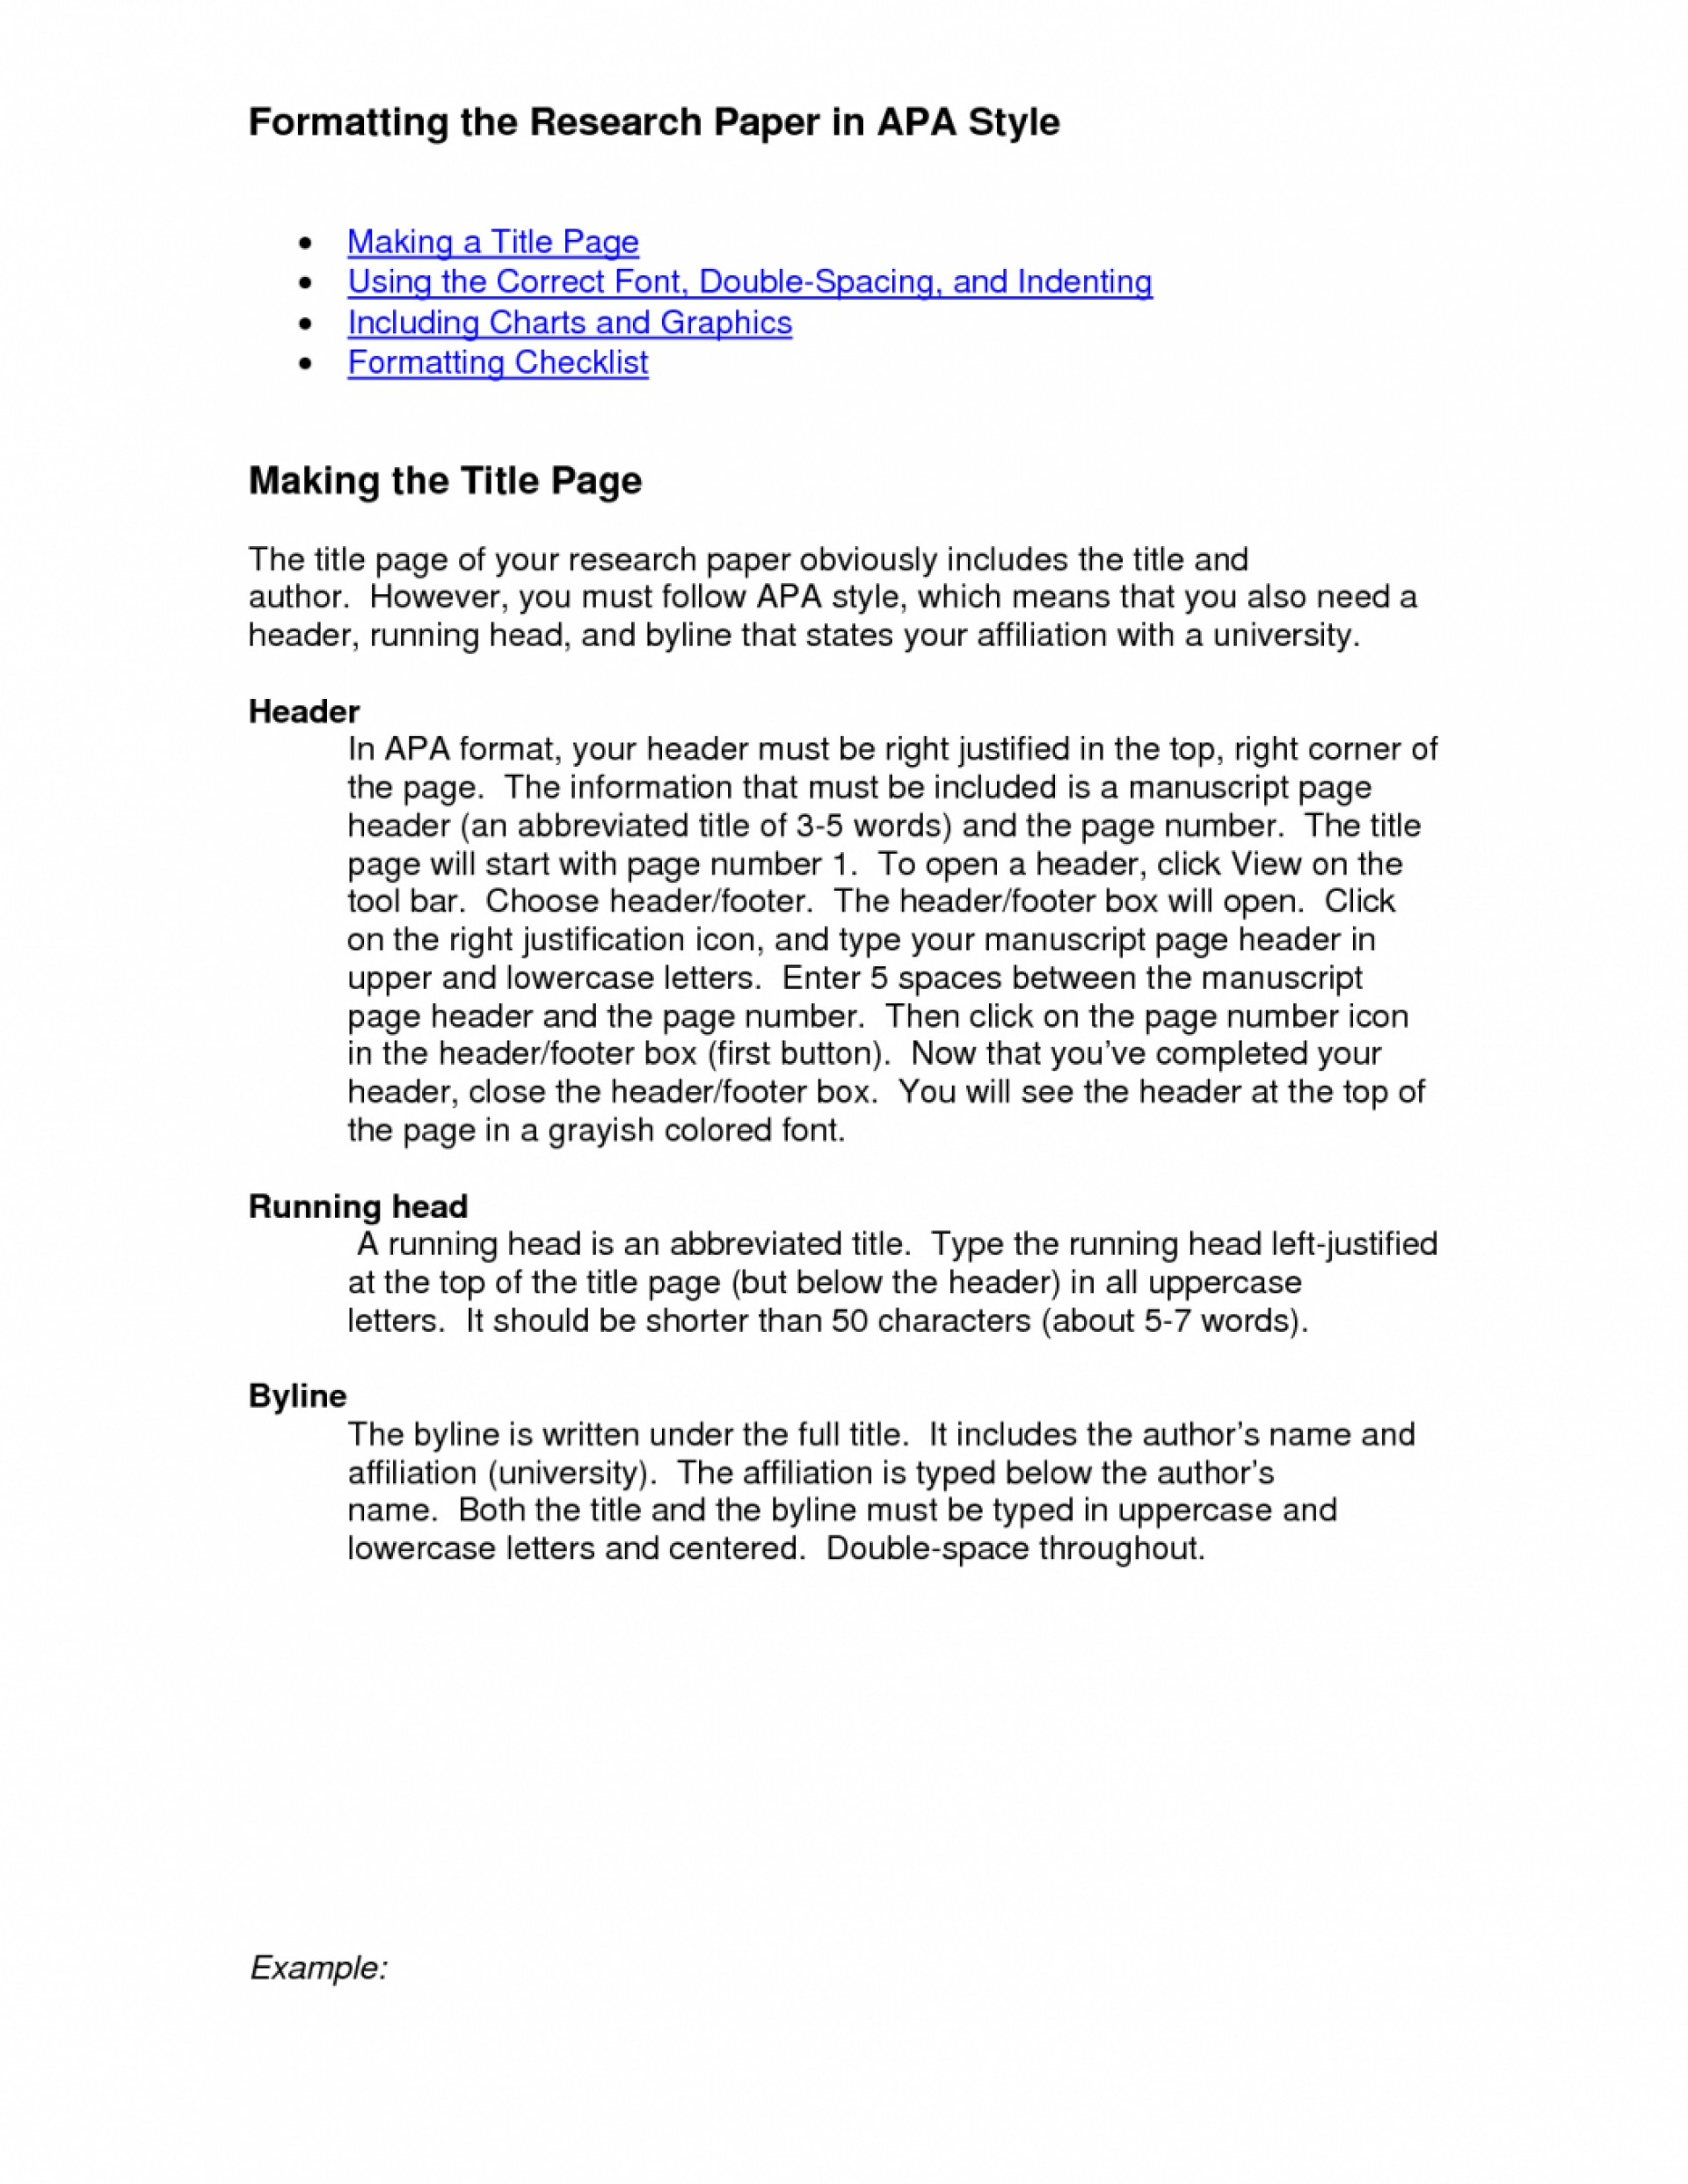 020 Proper Essay Format Correct Mys Of Research Papers On Psychology Michael Pap 1048x1356 Unique Pdf Paper College Argumentative 1920